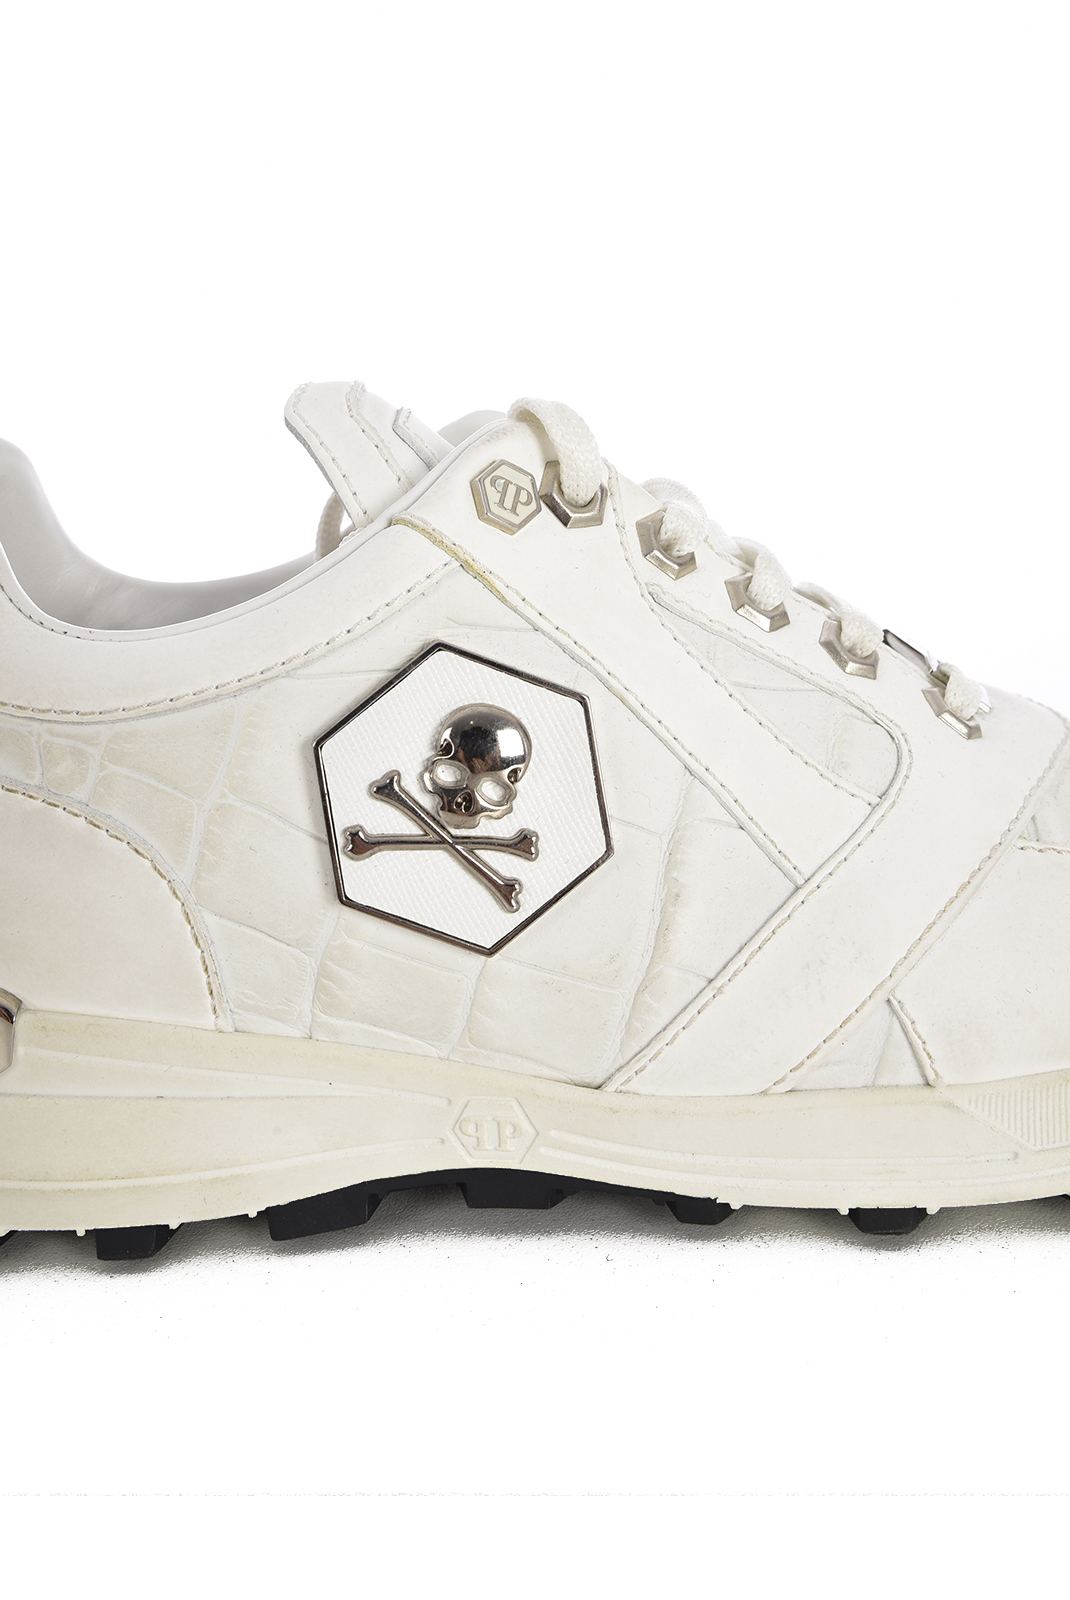 Baskets / Sport  Philipp plein MSC0244 FERGY WHITE/NICKEL